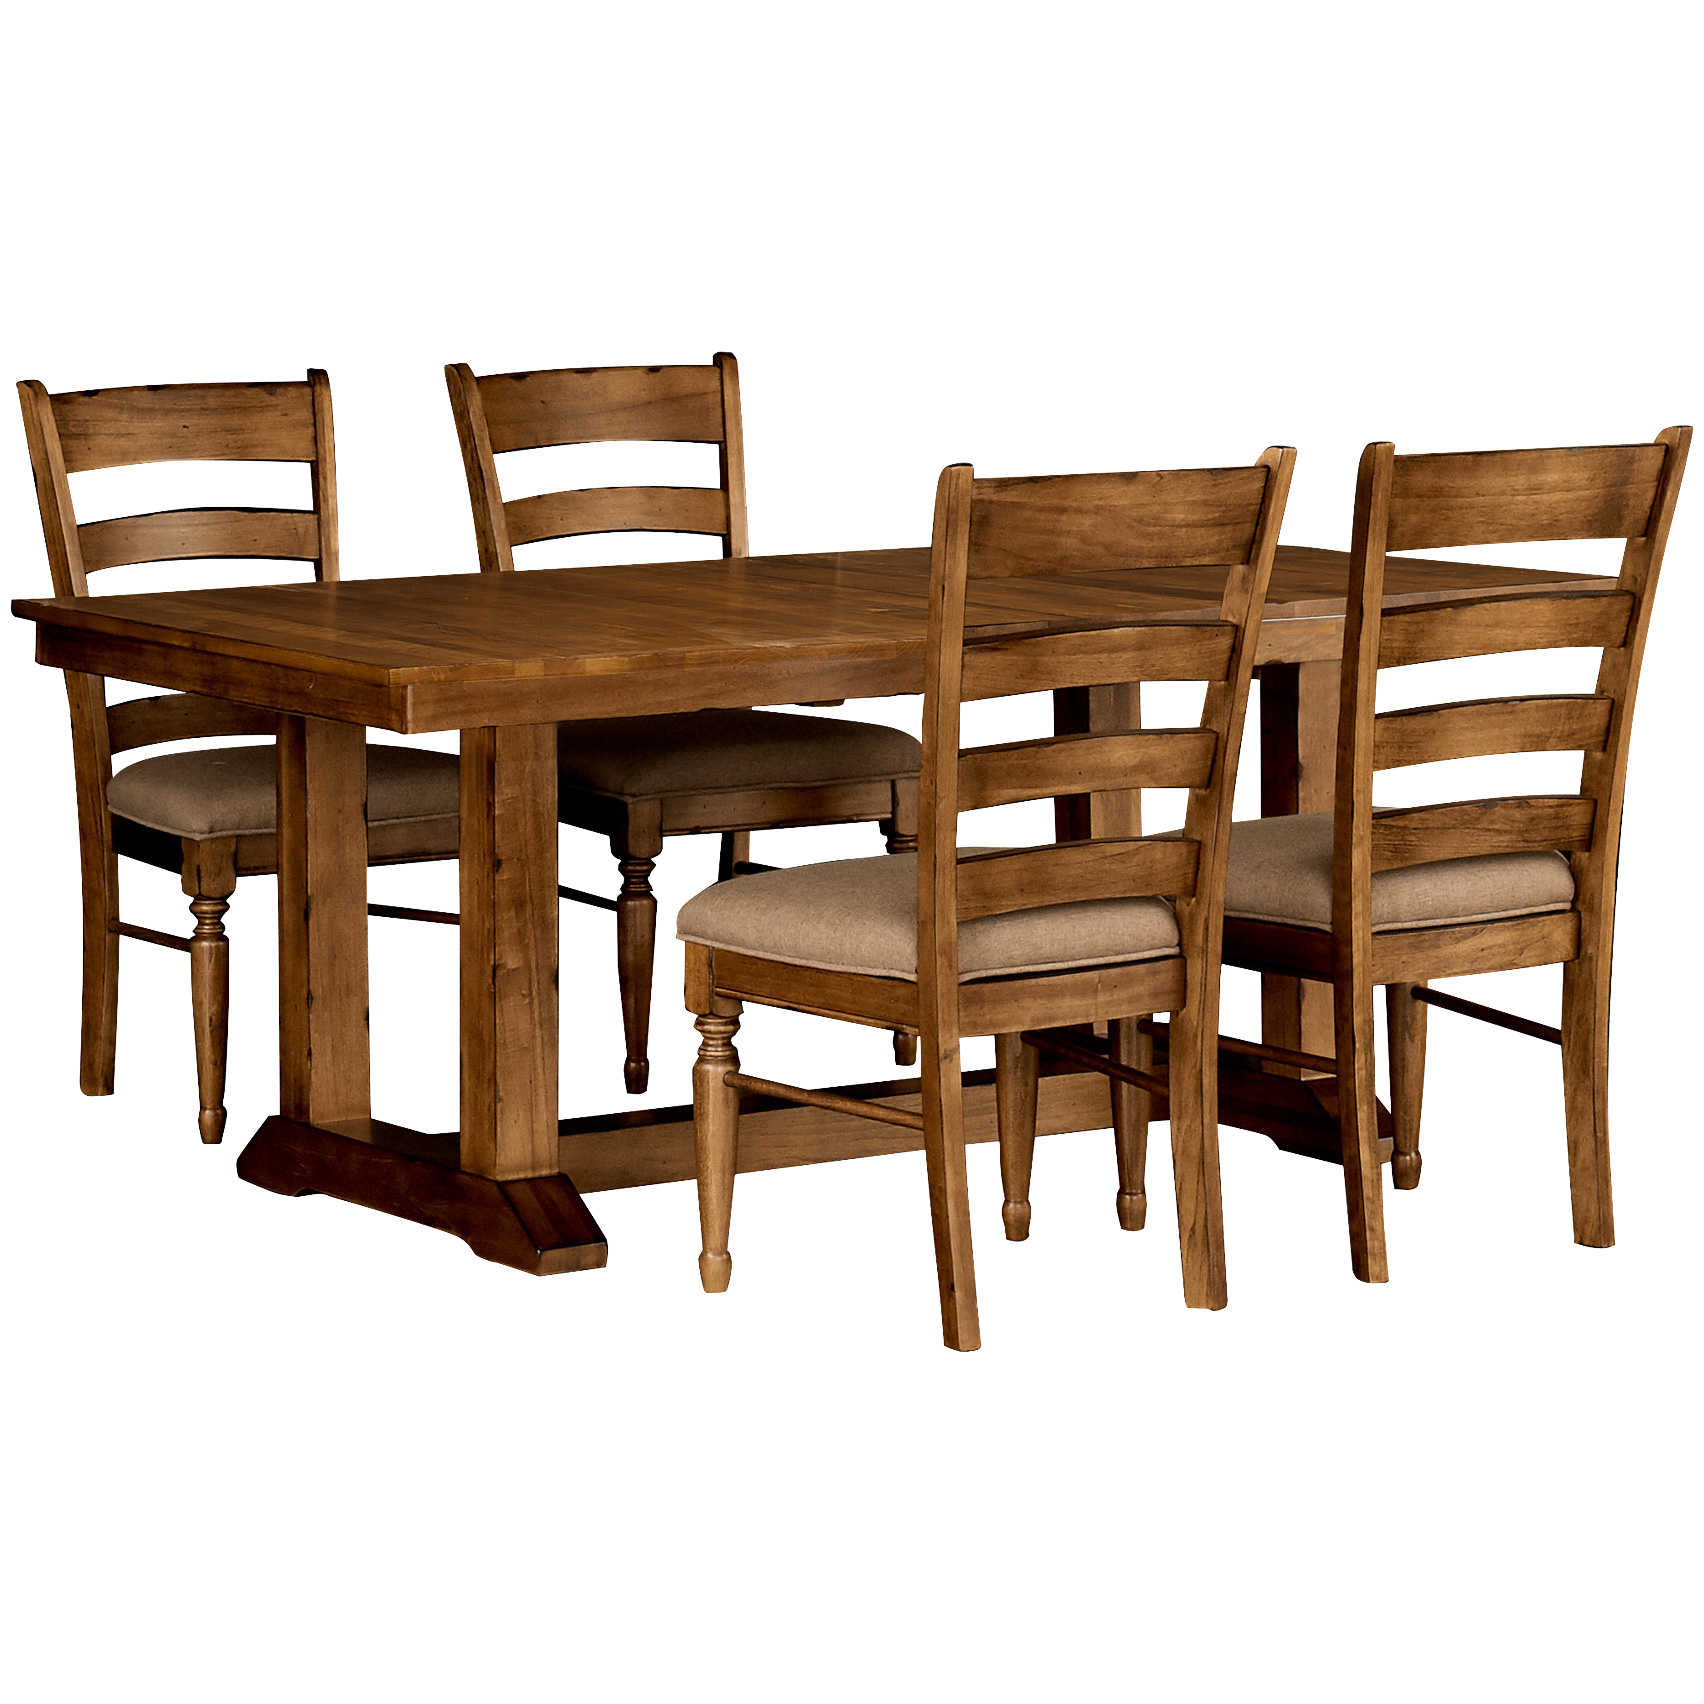 America | Bennett Smokey Quartz 5 Piece Upholstered Trestle Dining Set